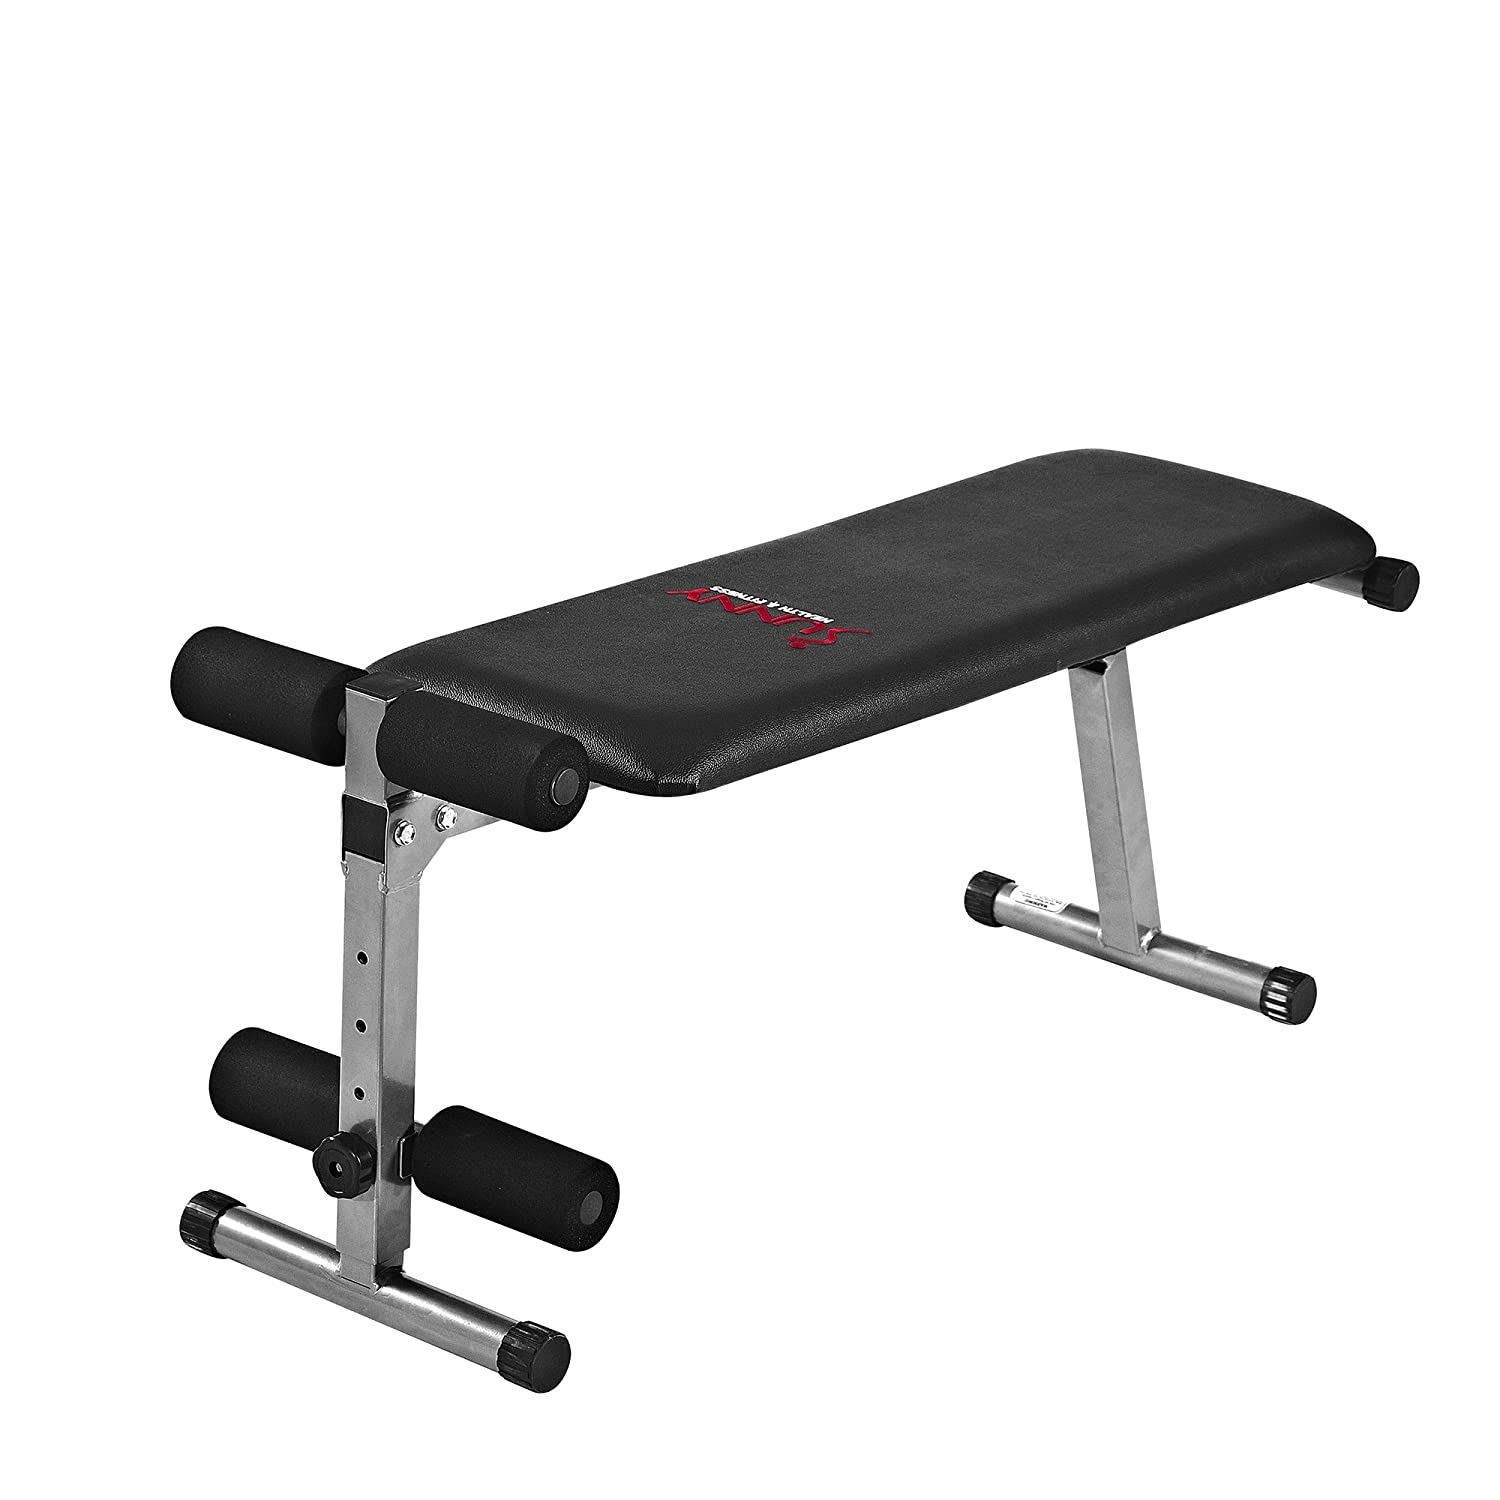 gym home press shoulder bench weight sentinel situp sit workout wtbench up itm new barbell fitness chest